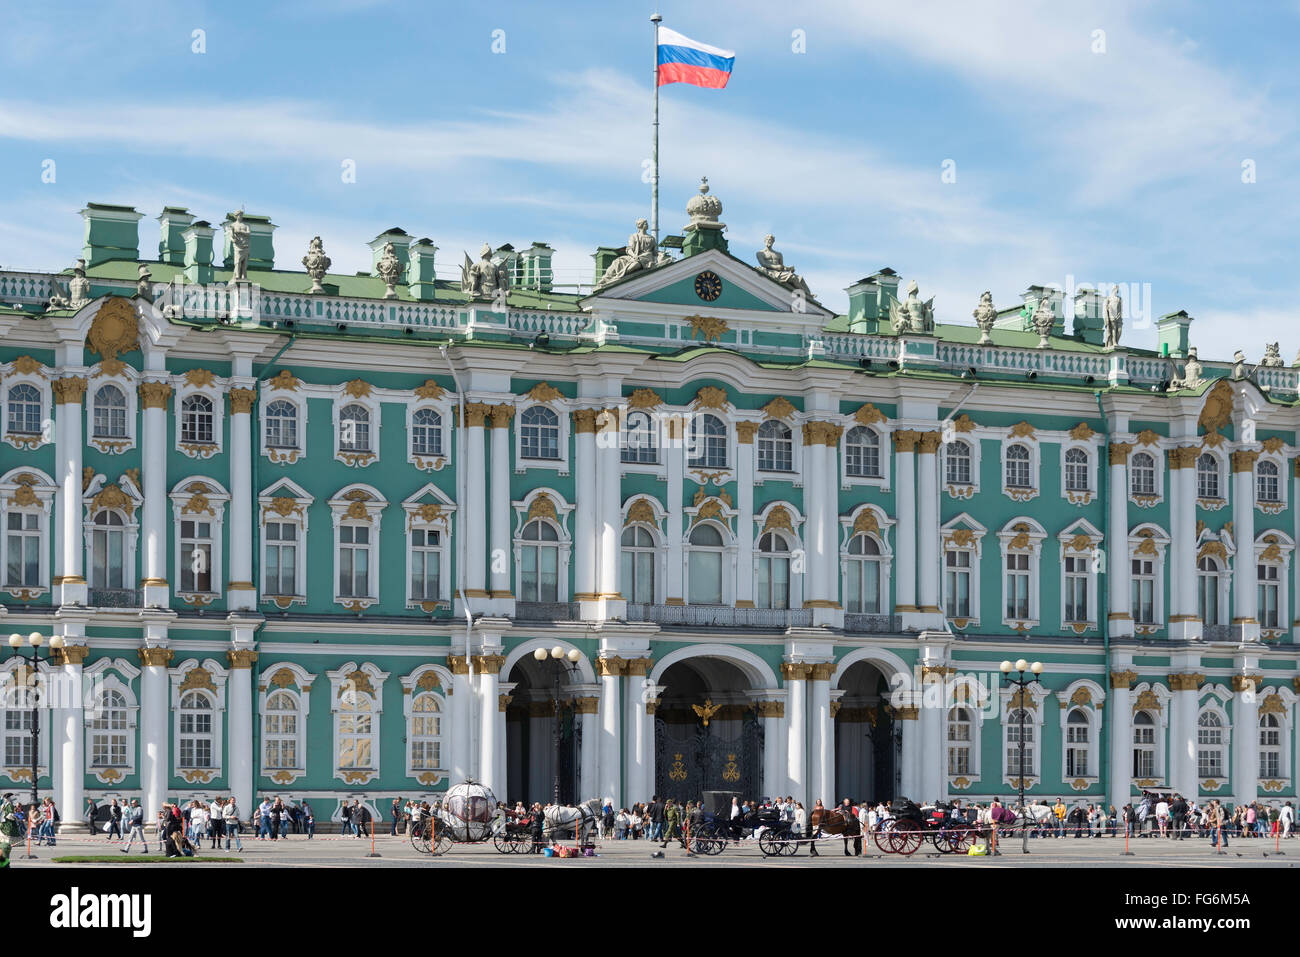 18th Century State Hermitage Museum, Palace Square, Saint Petersburg, Northwestern Region, Russian Federation - Stock Image